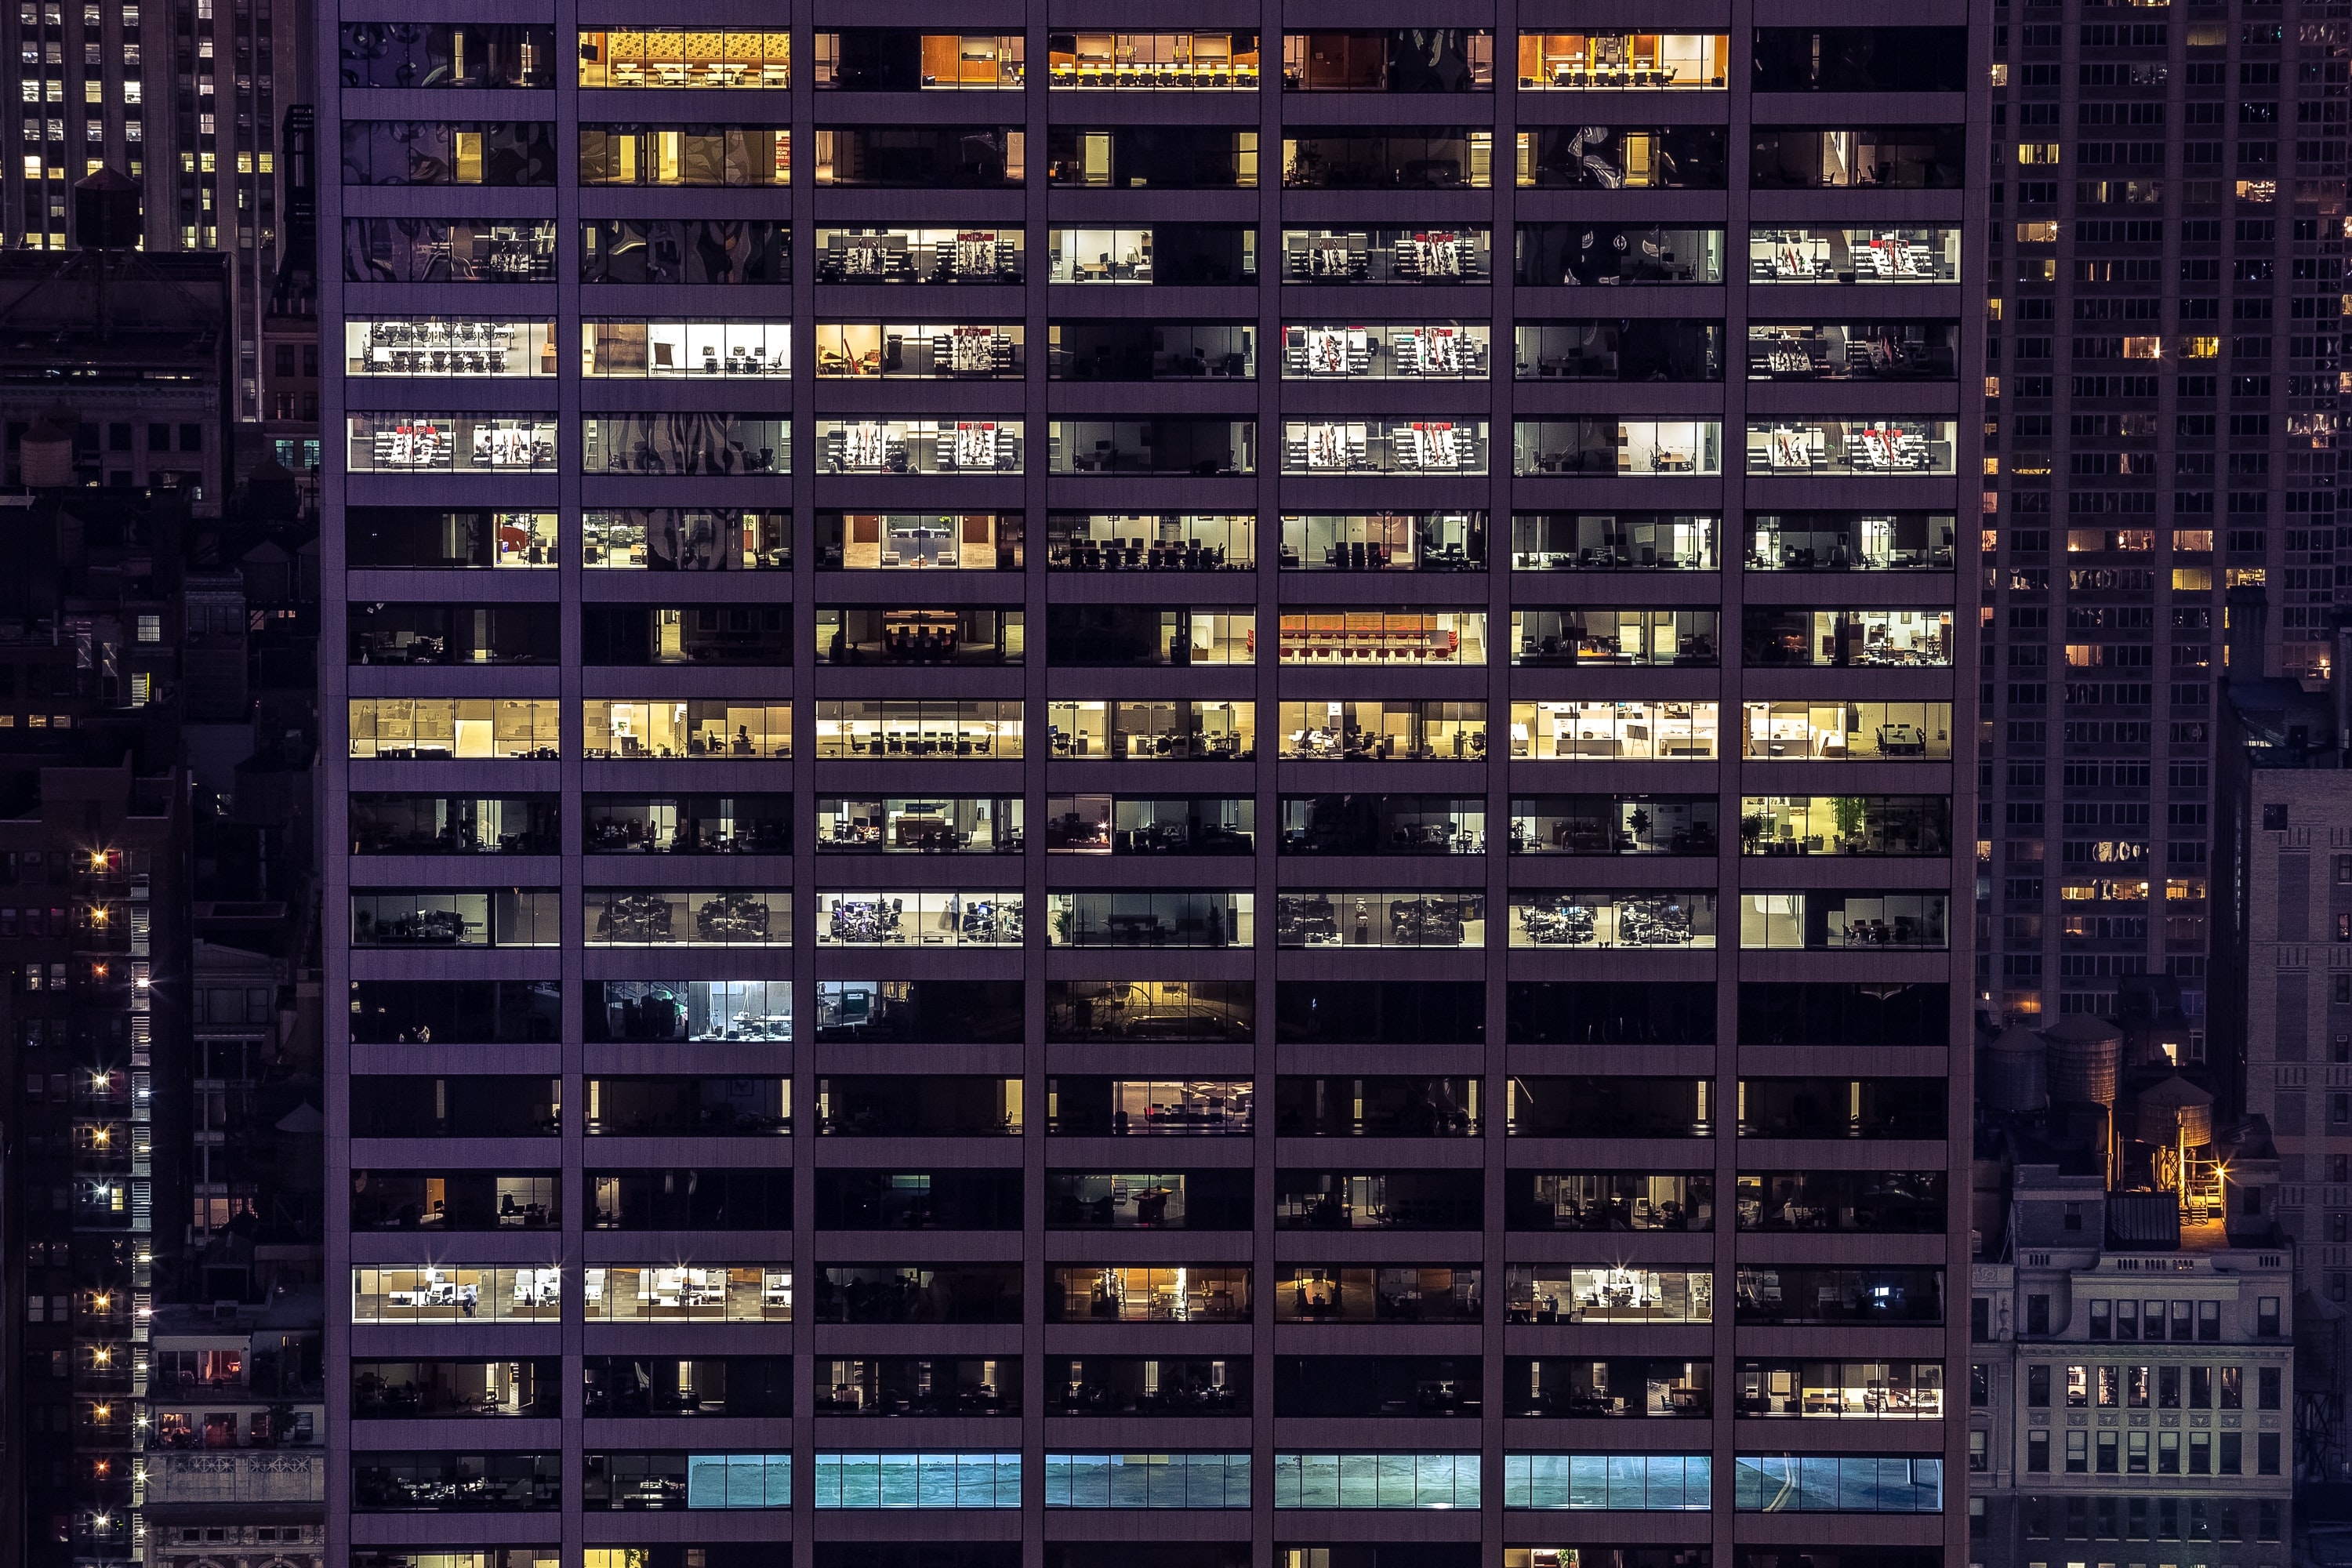 Lights in the windows of an office building in Manhattan in the evening